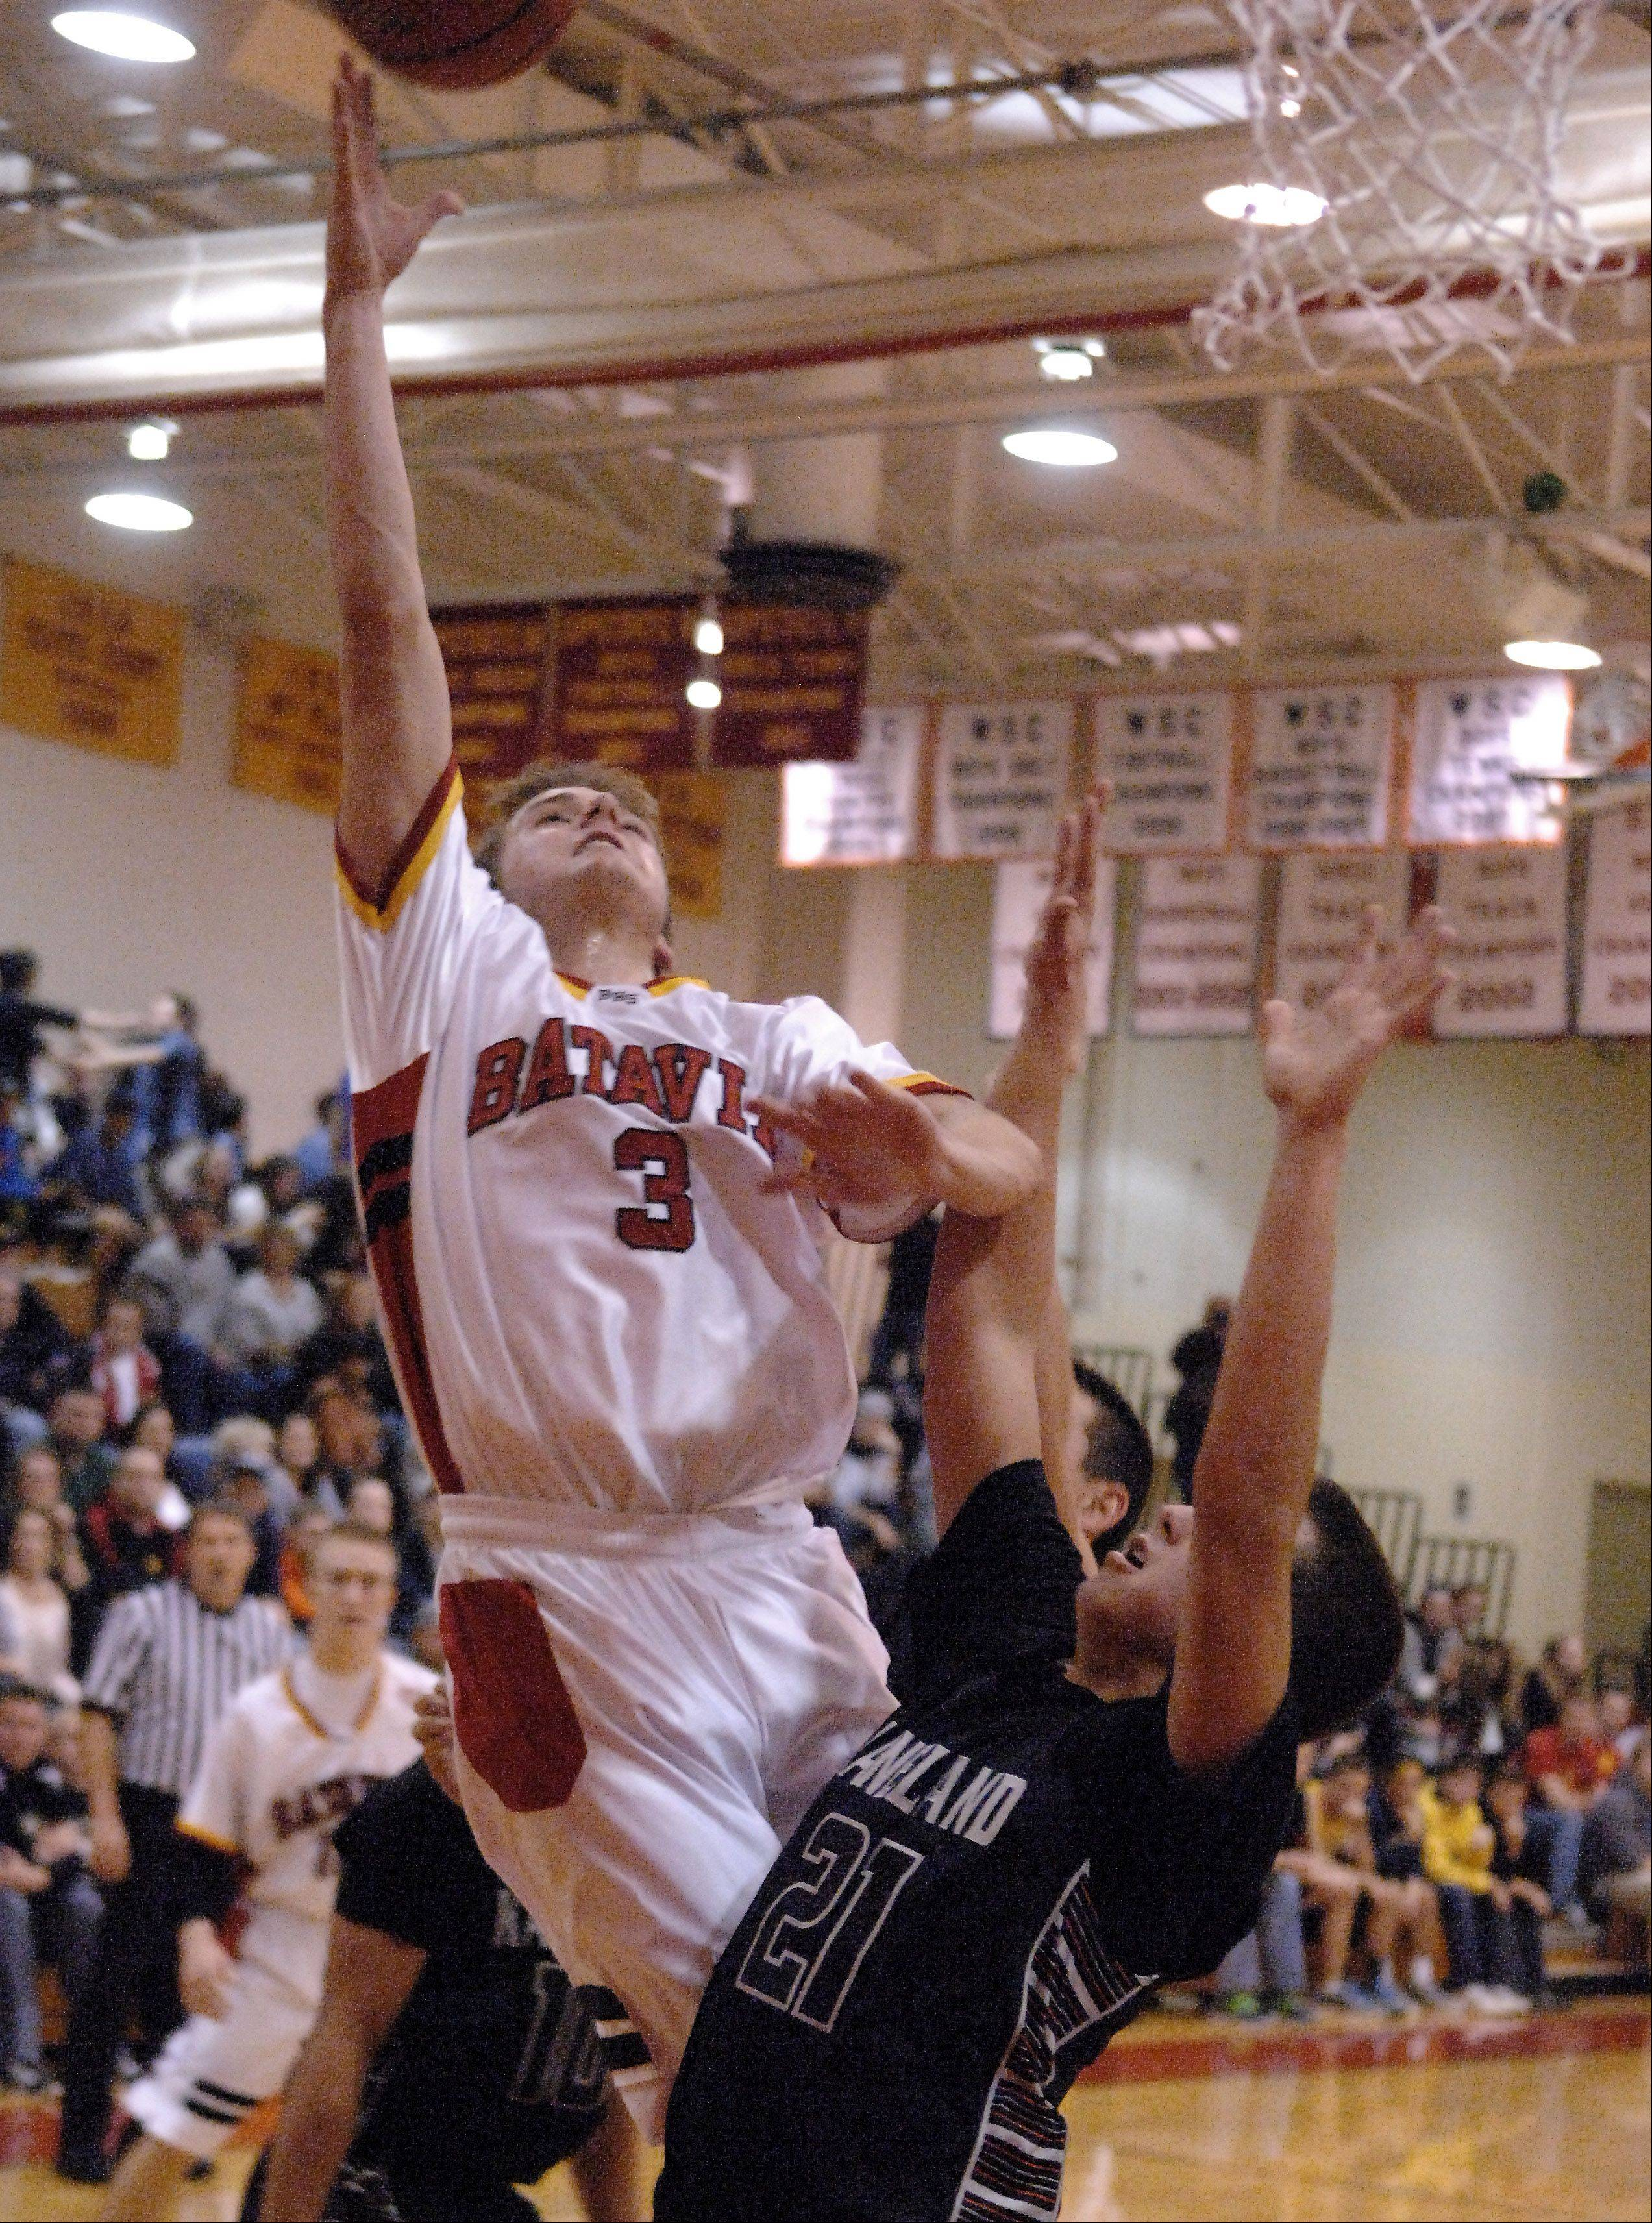 Batavia's Jake Pollack drives to the basket and is fouled against Kaneland during Wednesday's game at Batavia.